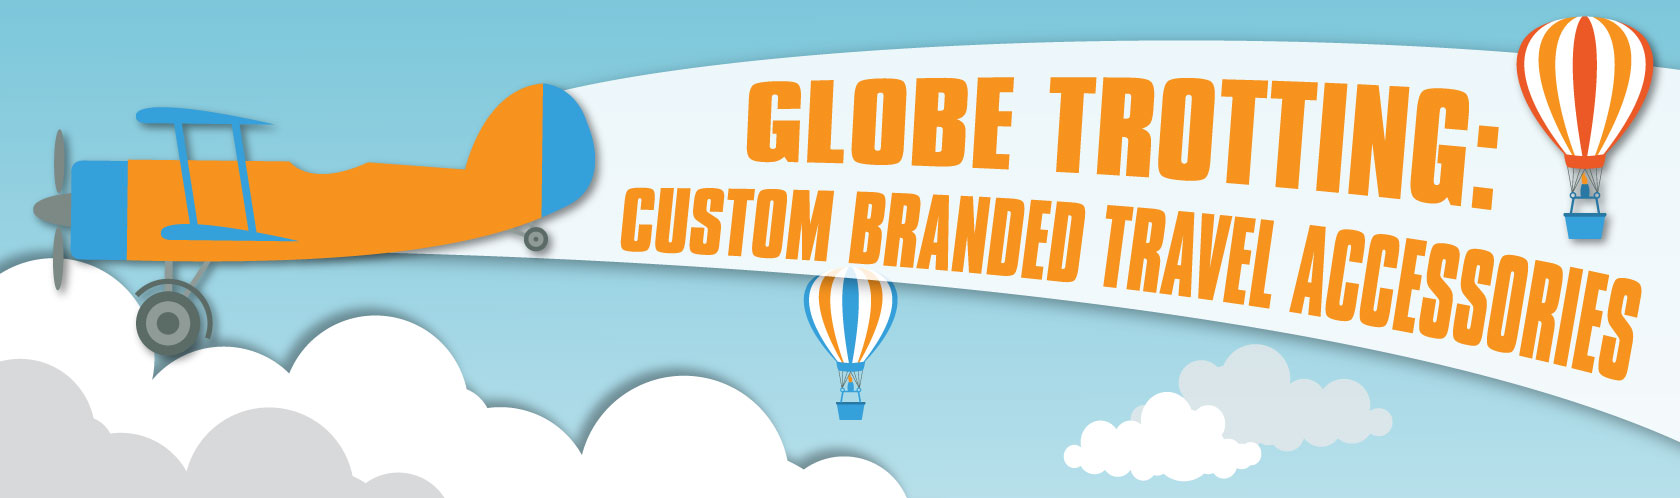 Globe Trotting: Custom Branded Travel Accessories